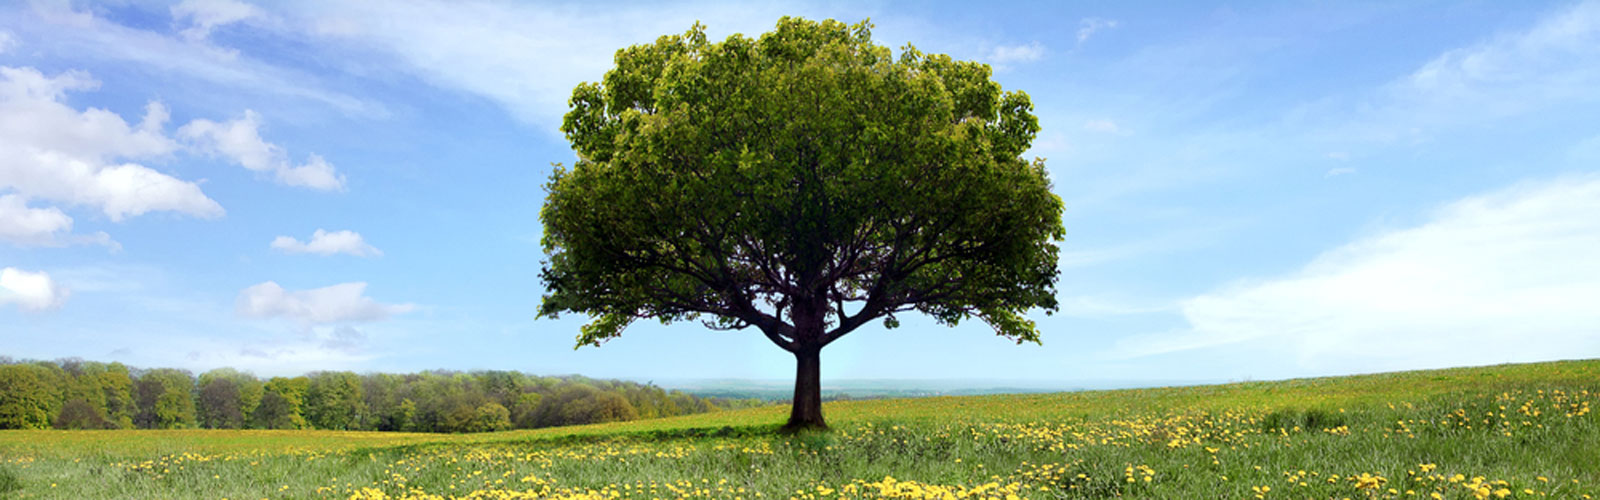 a mature tree in an beautiful green landscape